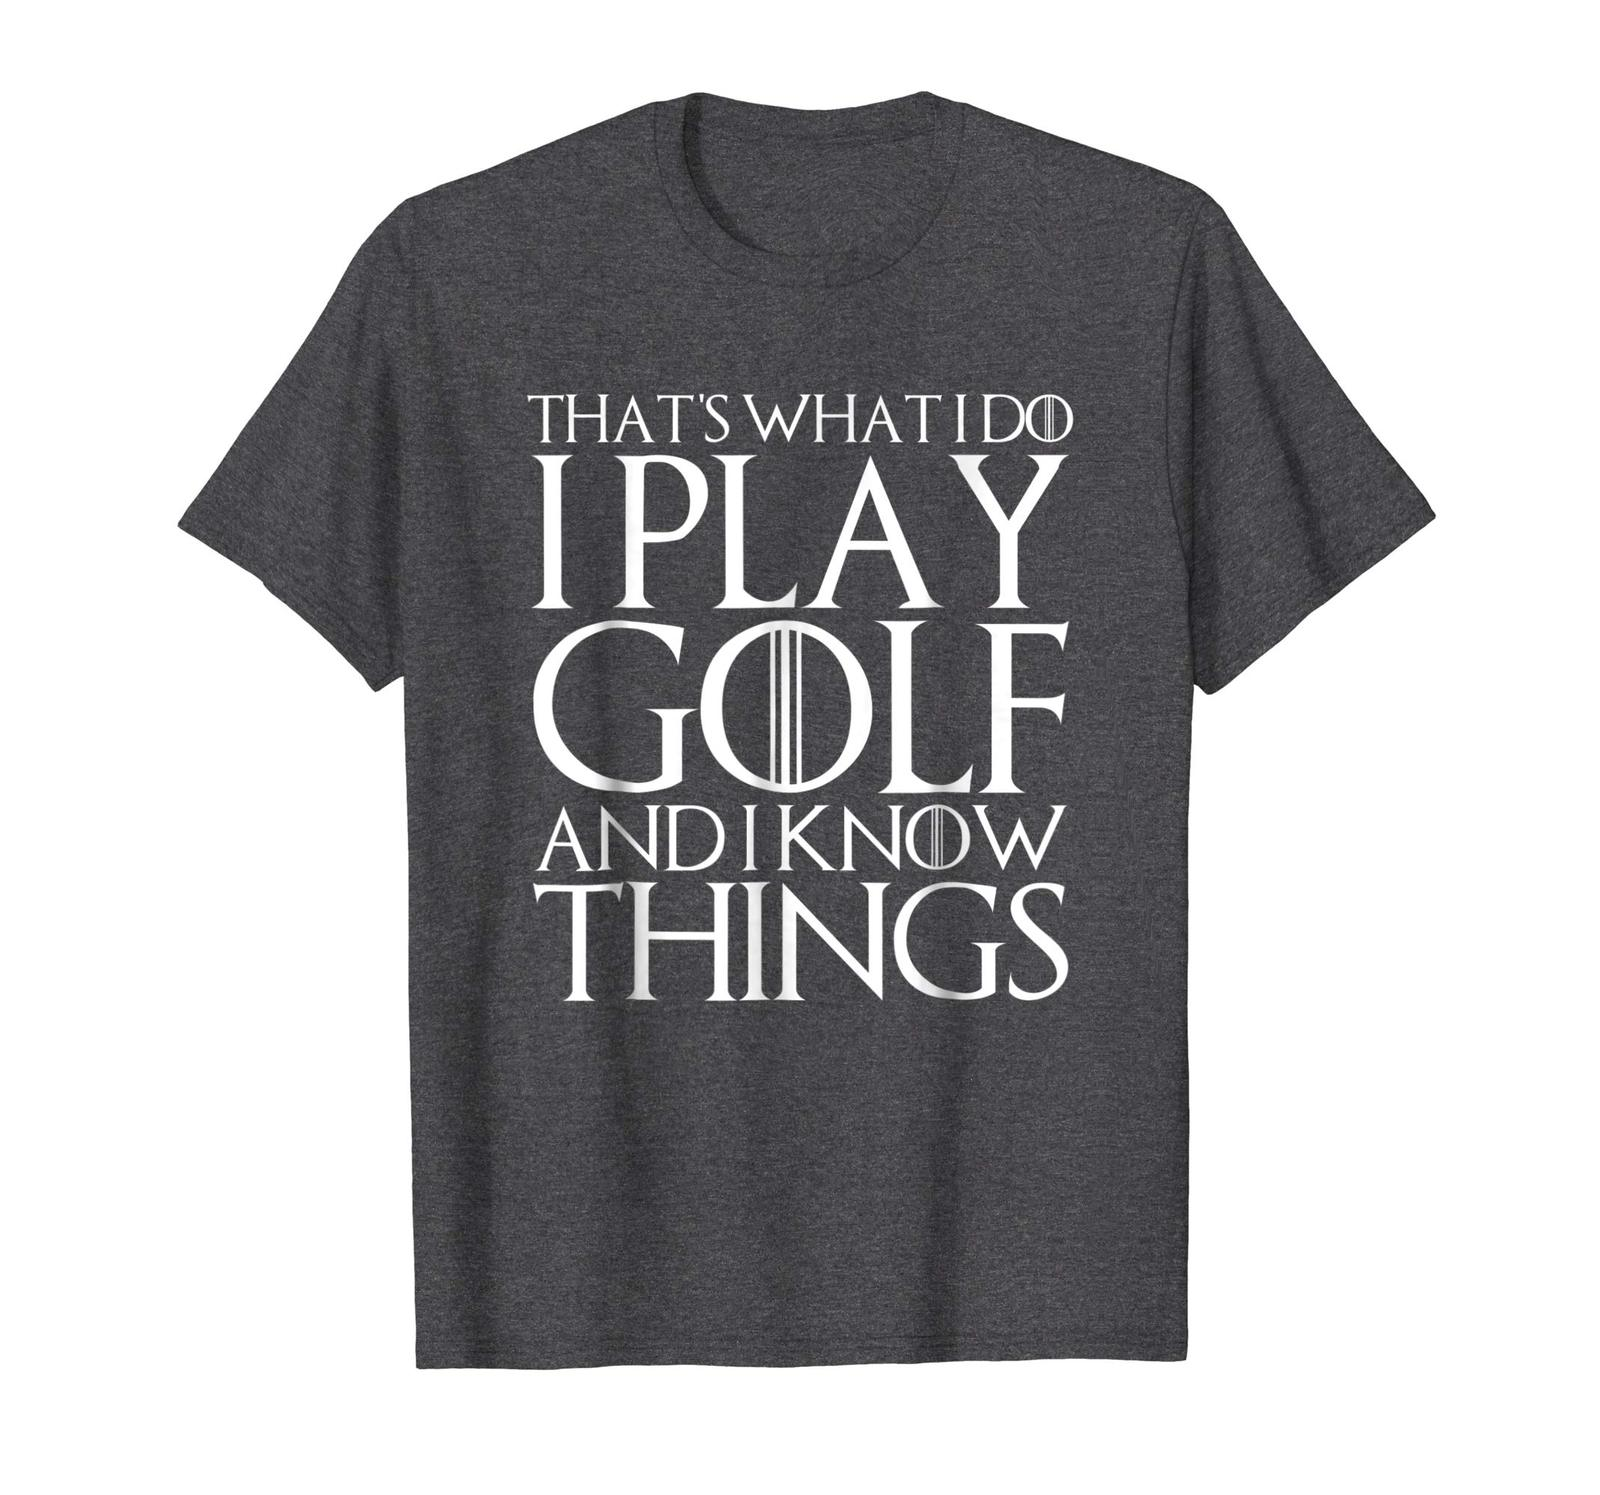 Brother Shirts - THAT'S WHAT I DO I PLAY GOLF AND I KNOW THINGS T-Shirt Men